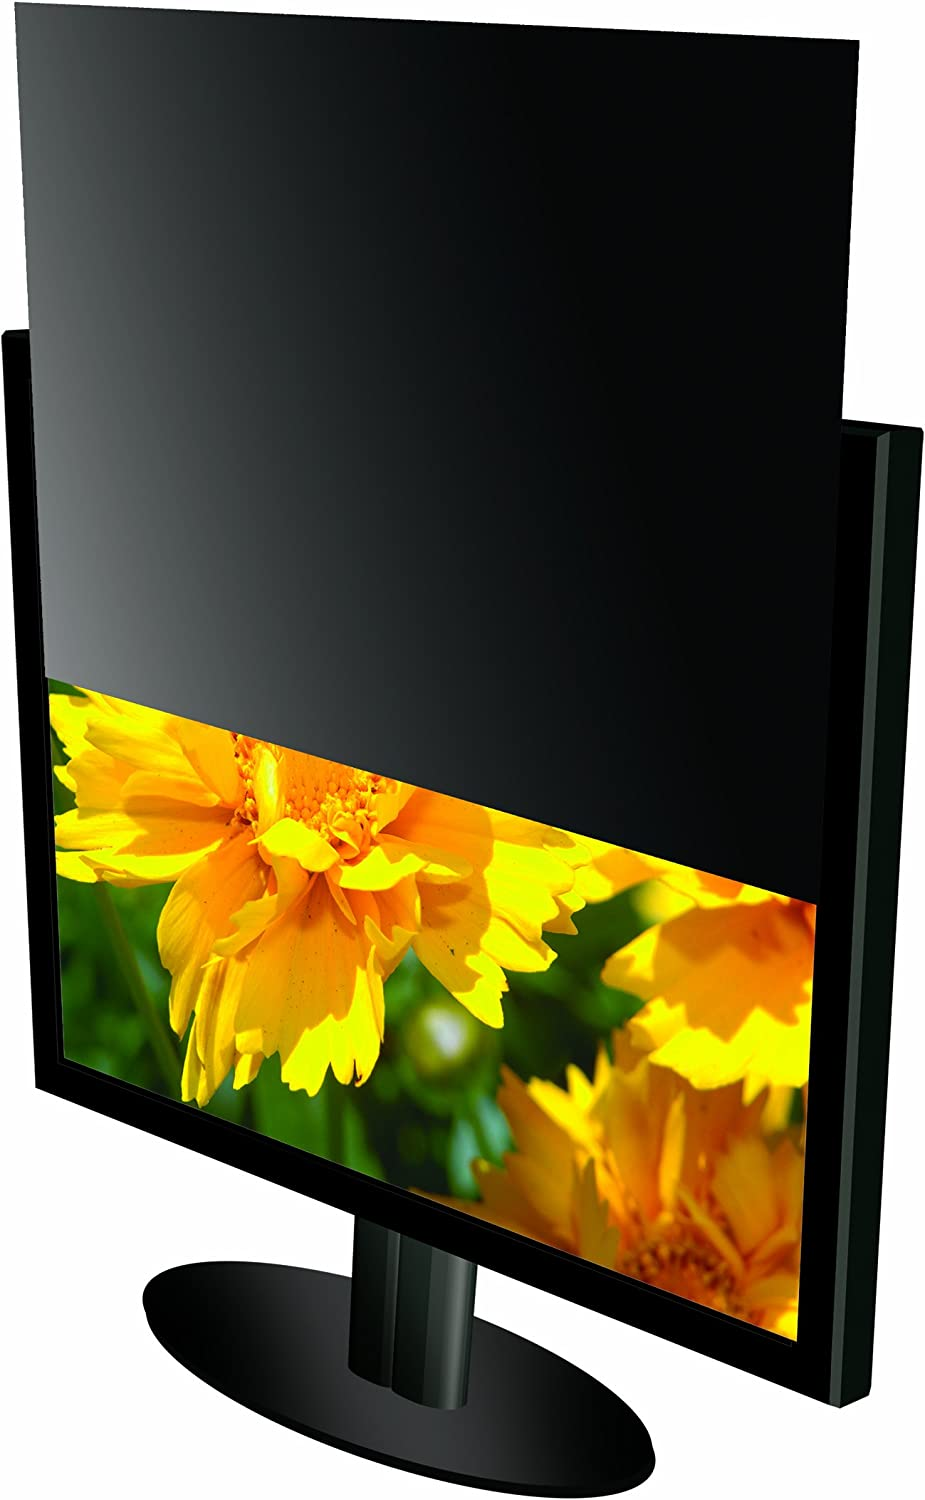 Other Unbranded SVL19W Blackout 19-Inch Widescreen LCD Privacy Screen Filter